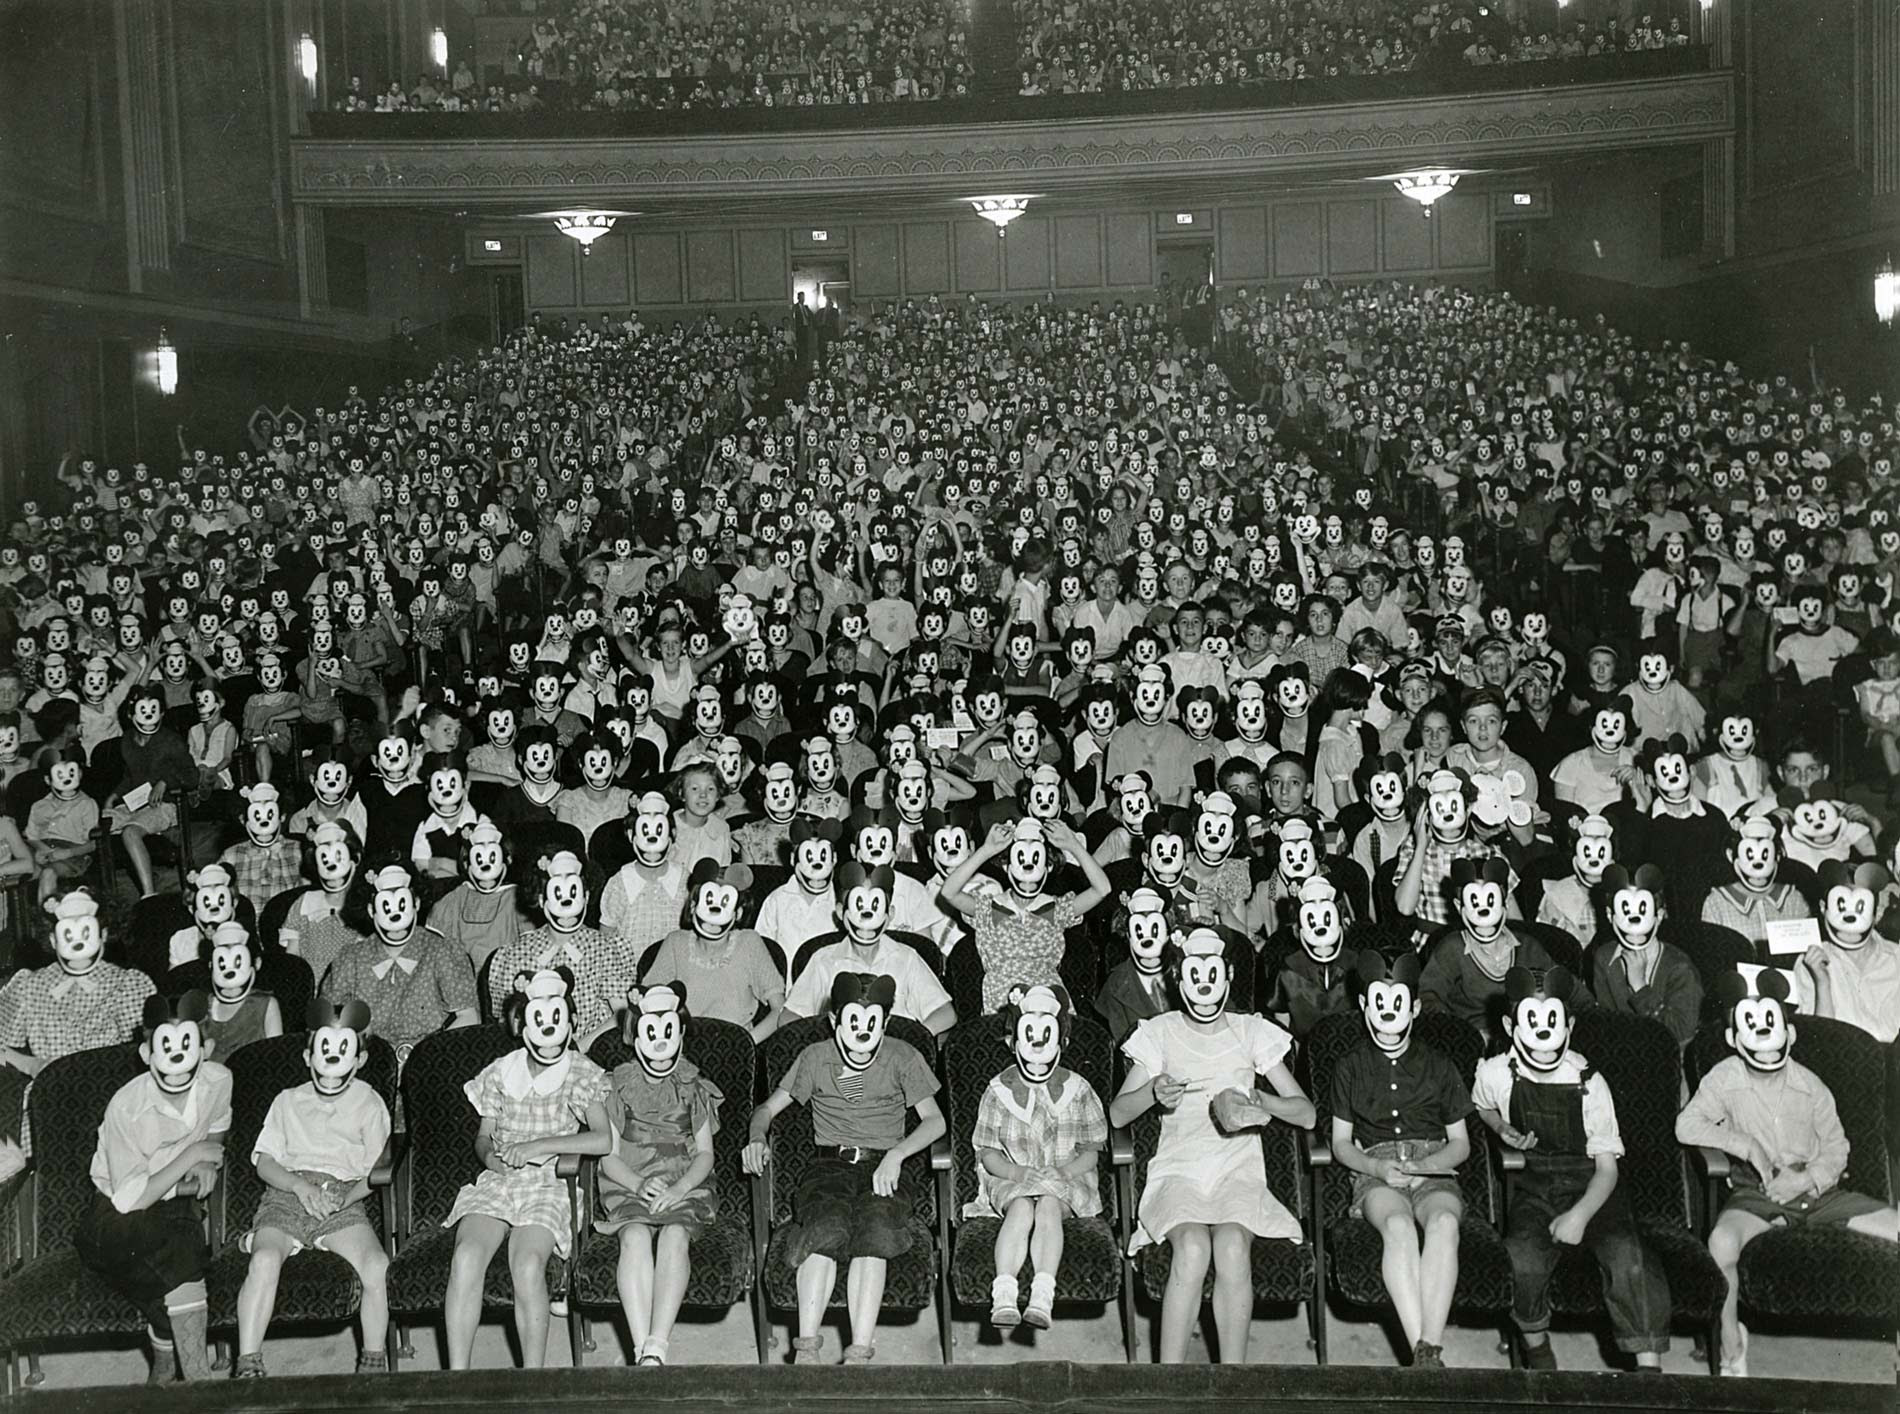 Meeting of the Mickey Mouse Club, early 1930s